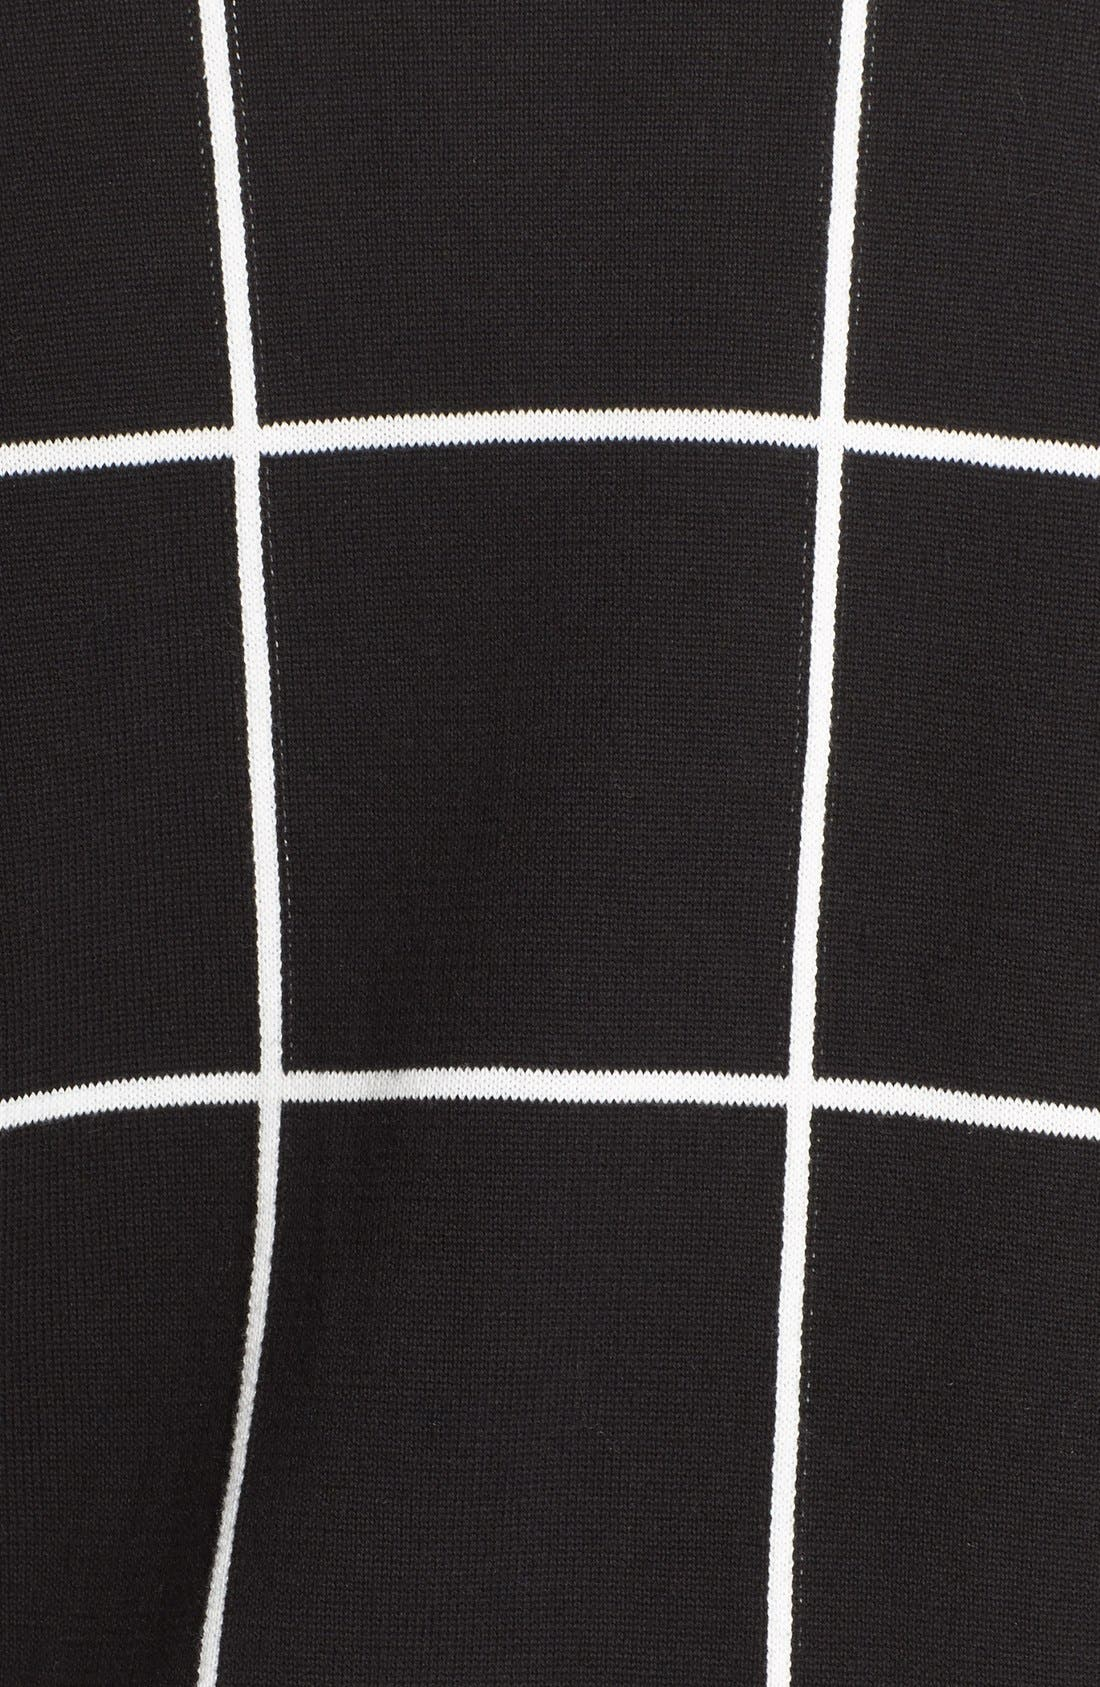 Alternate Image 5  - Vince Camuto Windowpane Intarsia Open Front Cardigan (Plus Size)